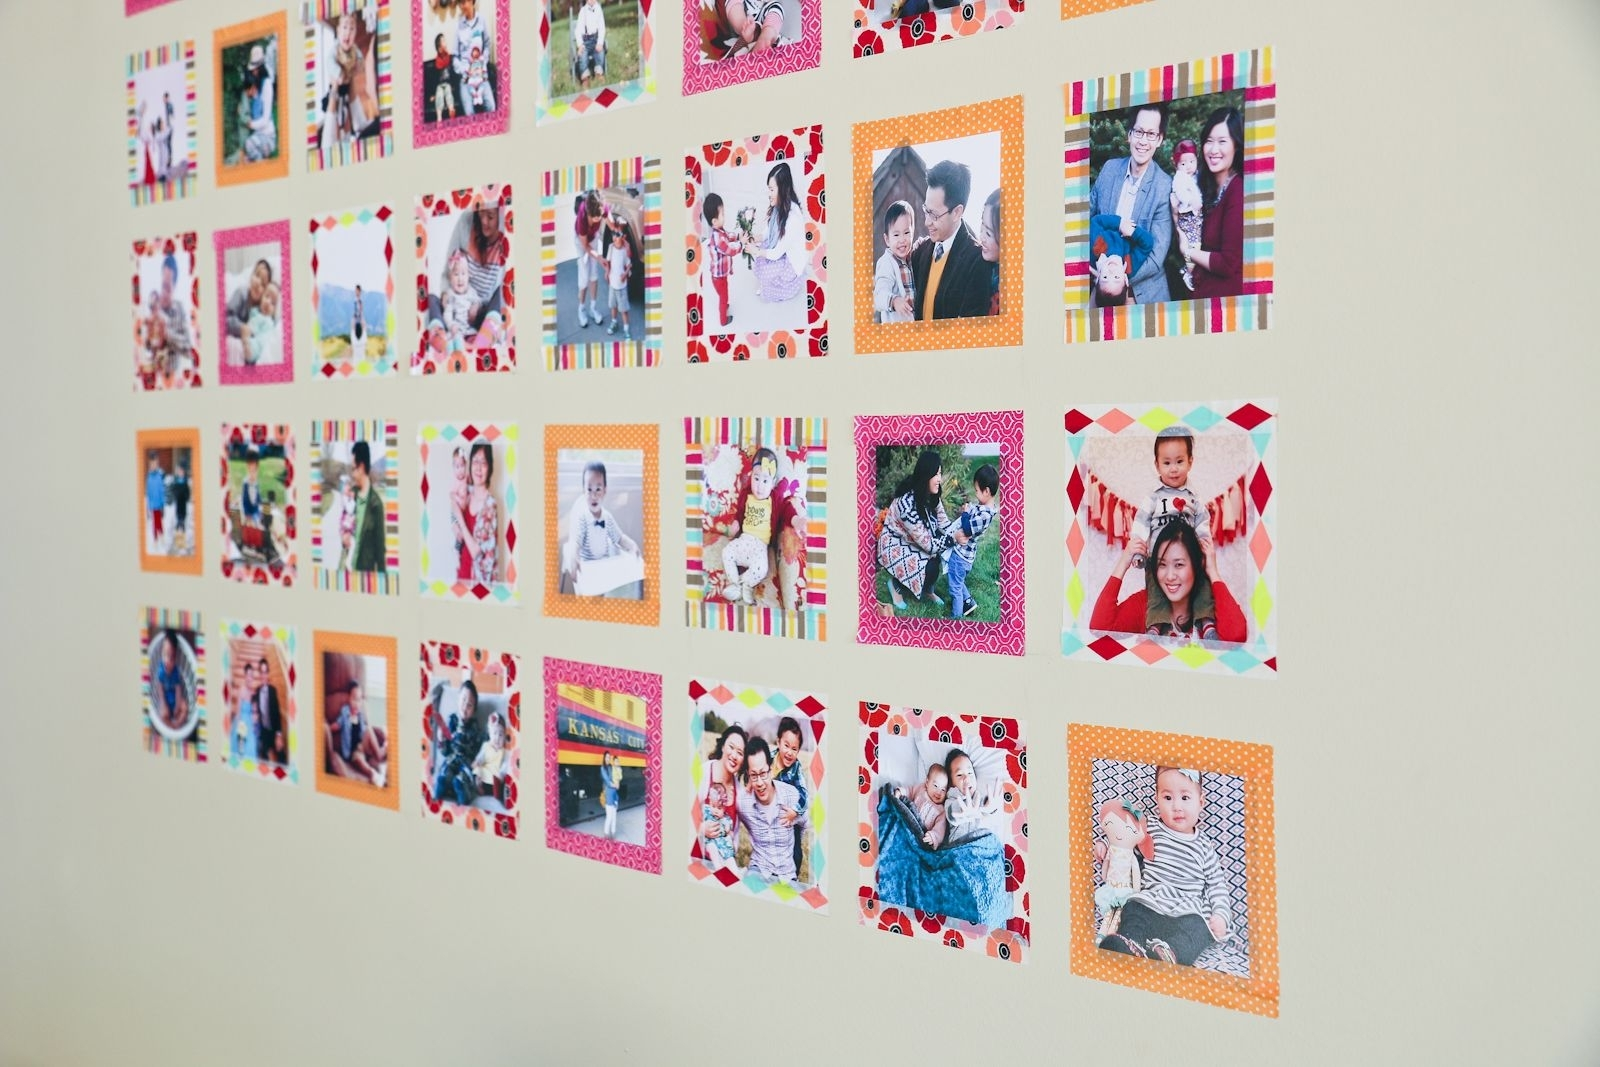 Instagram Wall Art With Washi Tape | Instagram Wall And Walls Within Most Popular Instagram Wall Art (Gallery 7 of 20)